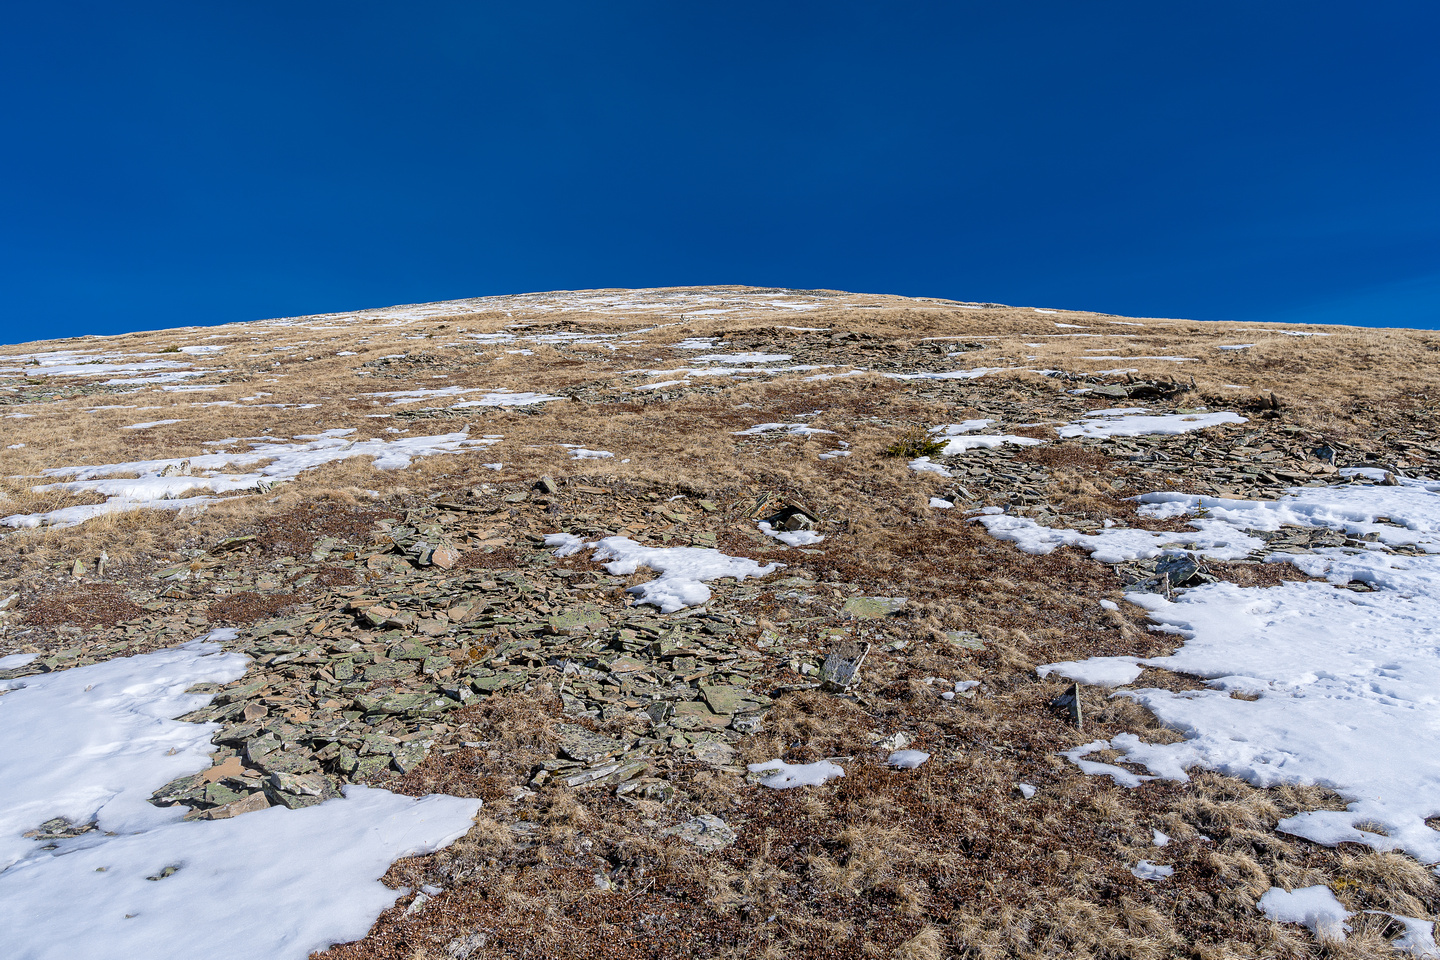 Open slopes to the false summit of Willson.